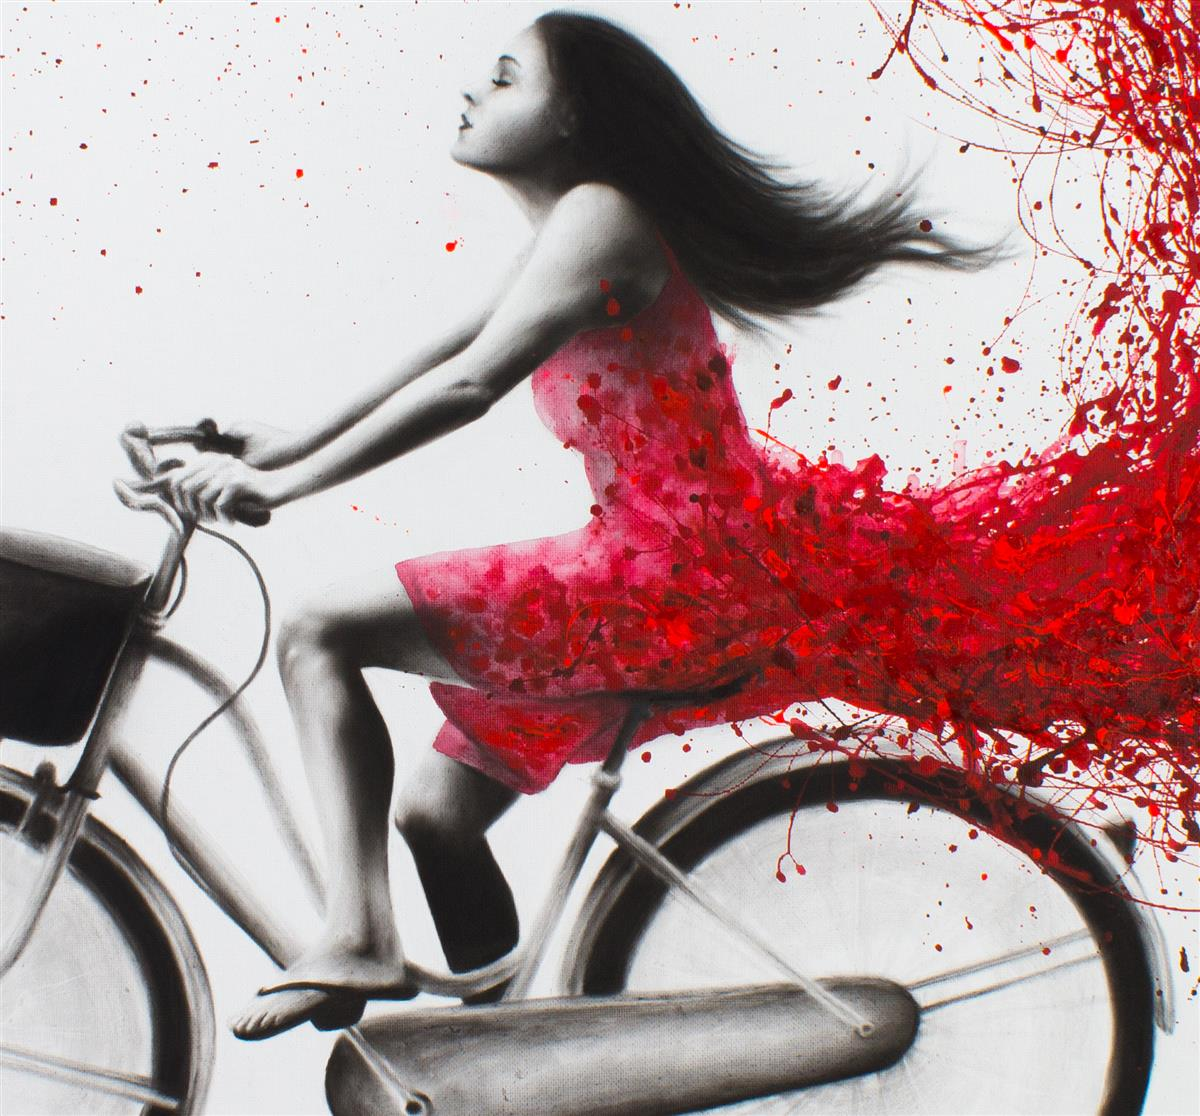 bicycle escape acrylics and charcoal ashvin harrison